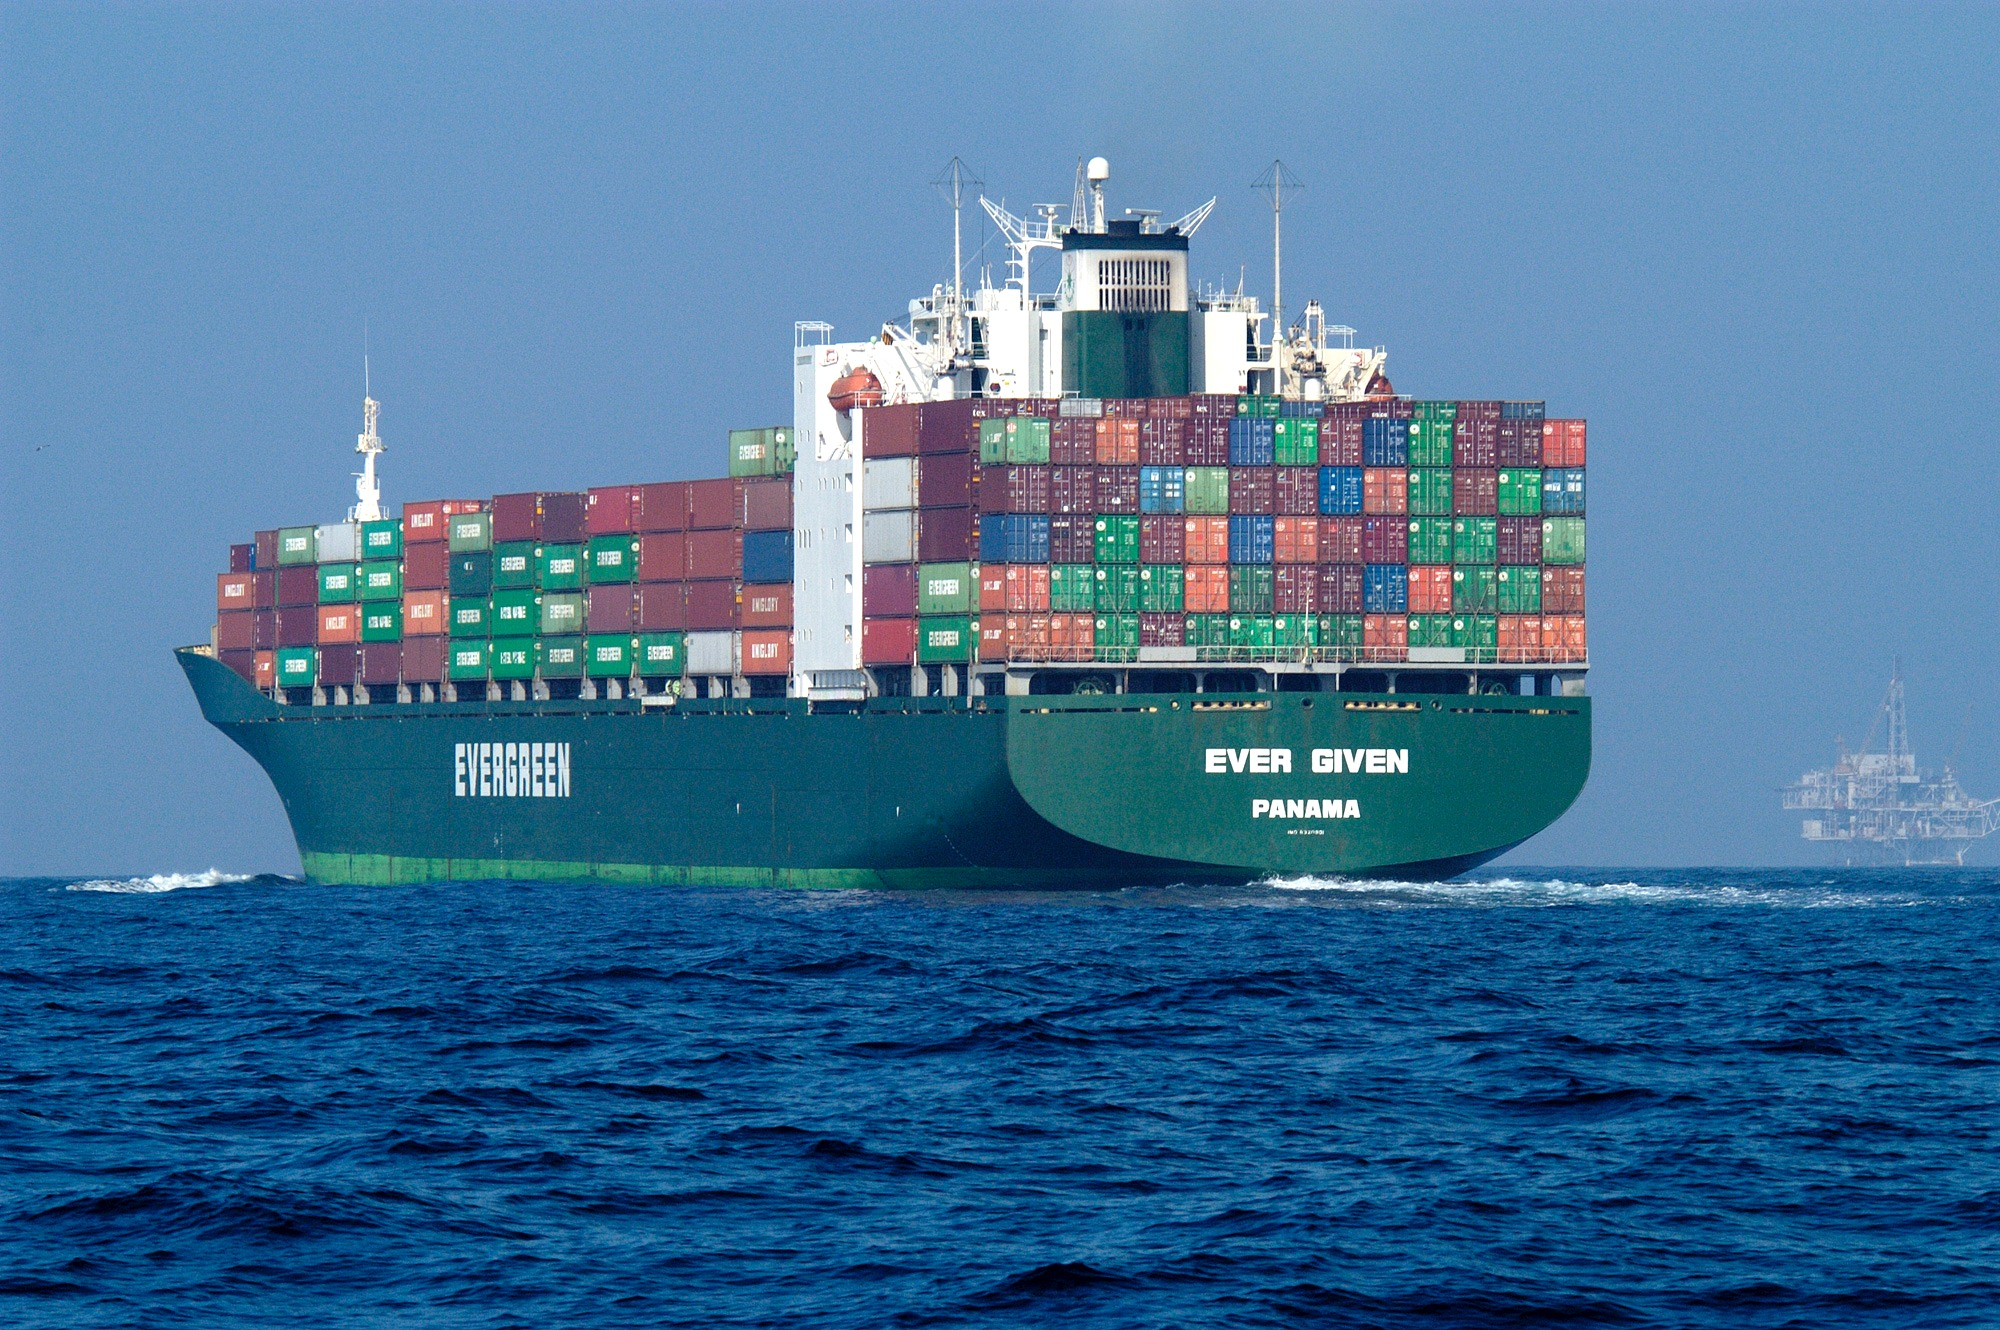 Sulphur Directive pushes shipping into stormy waters